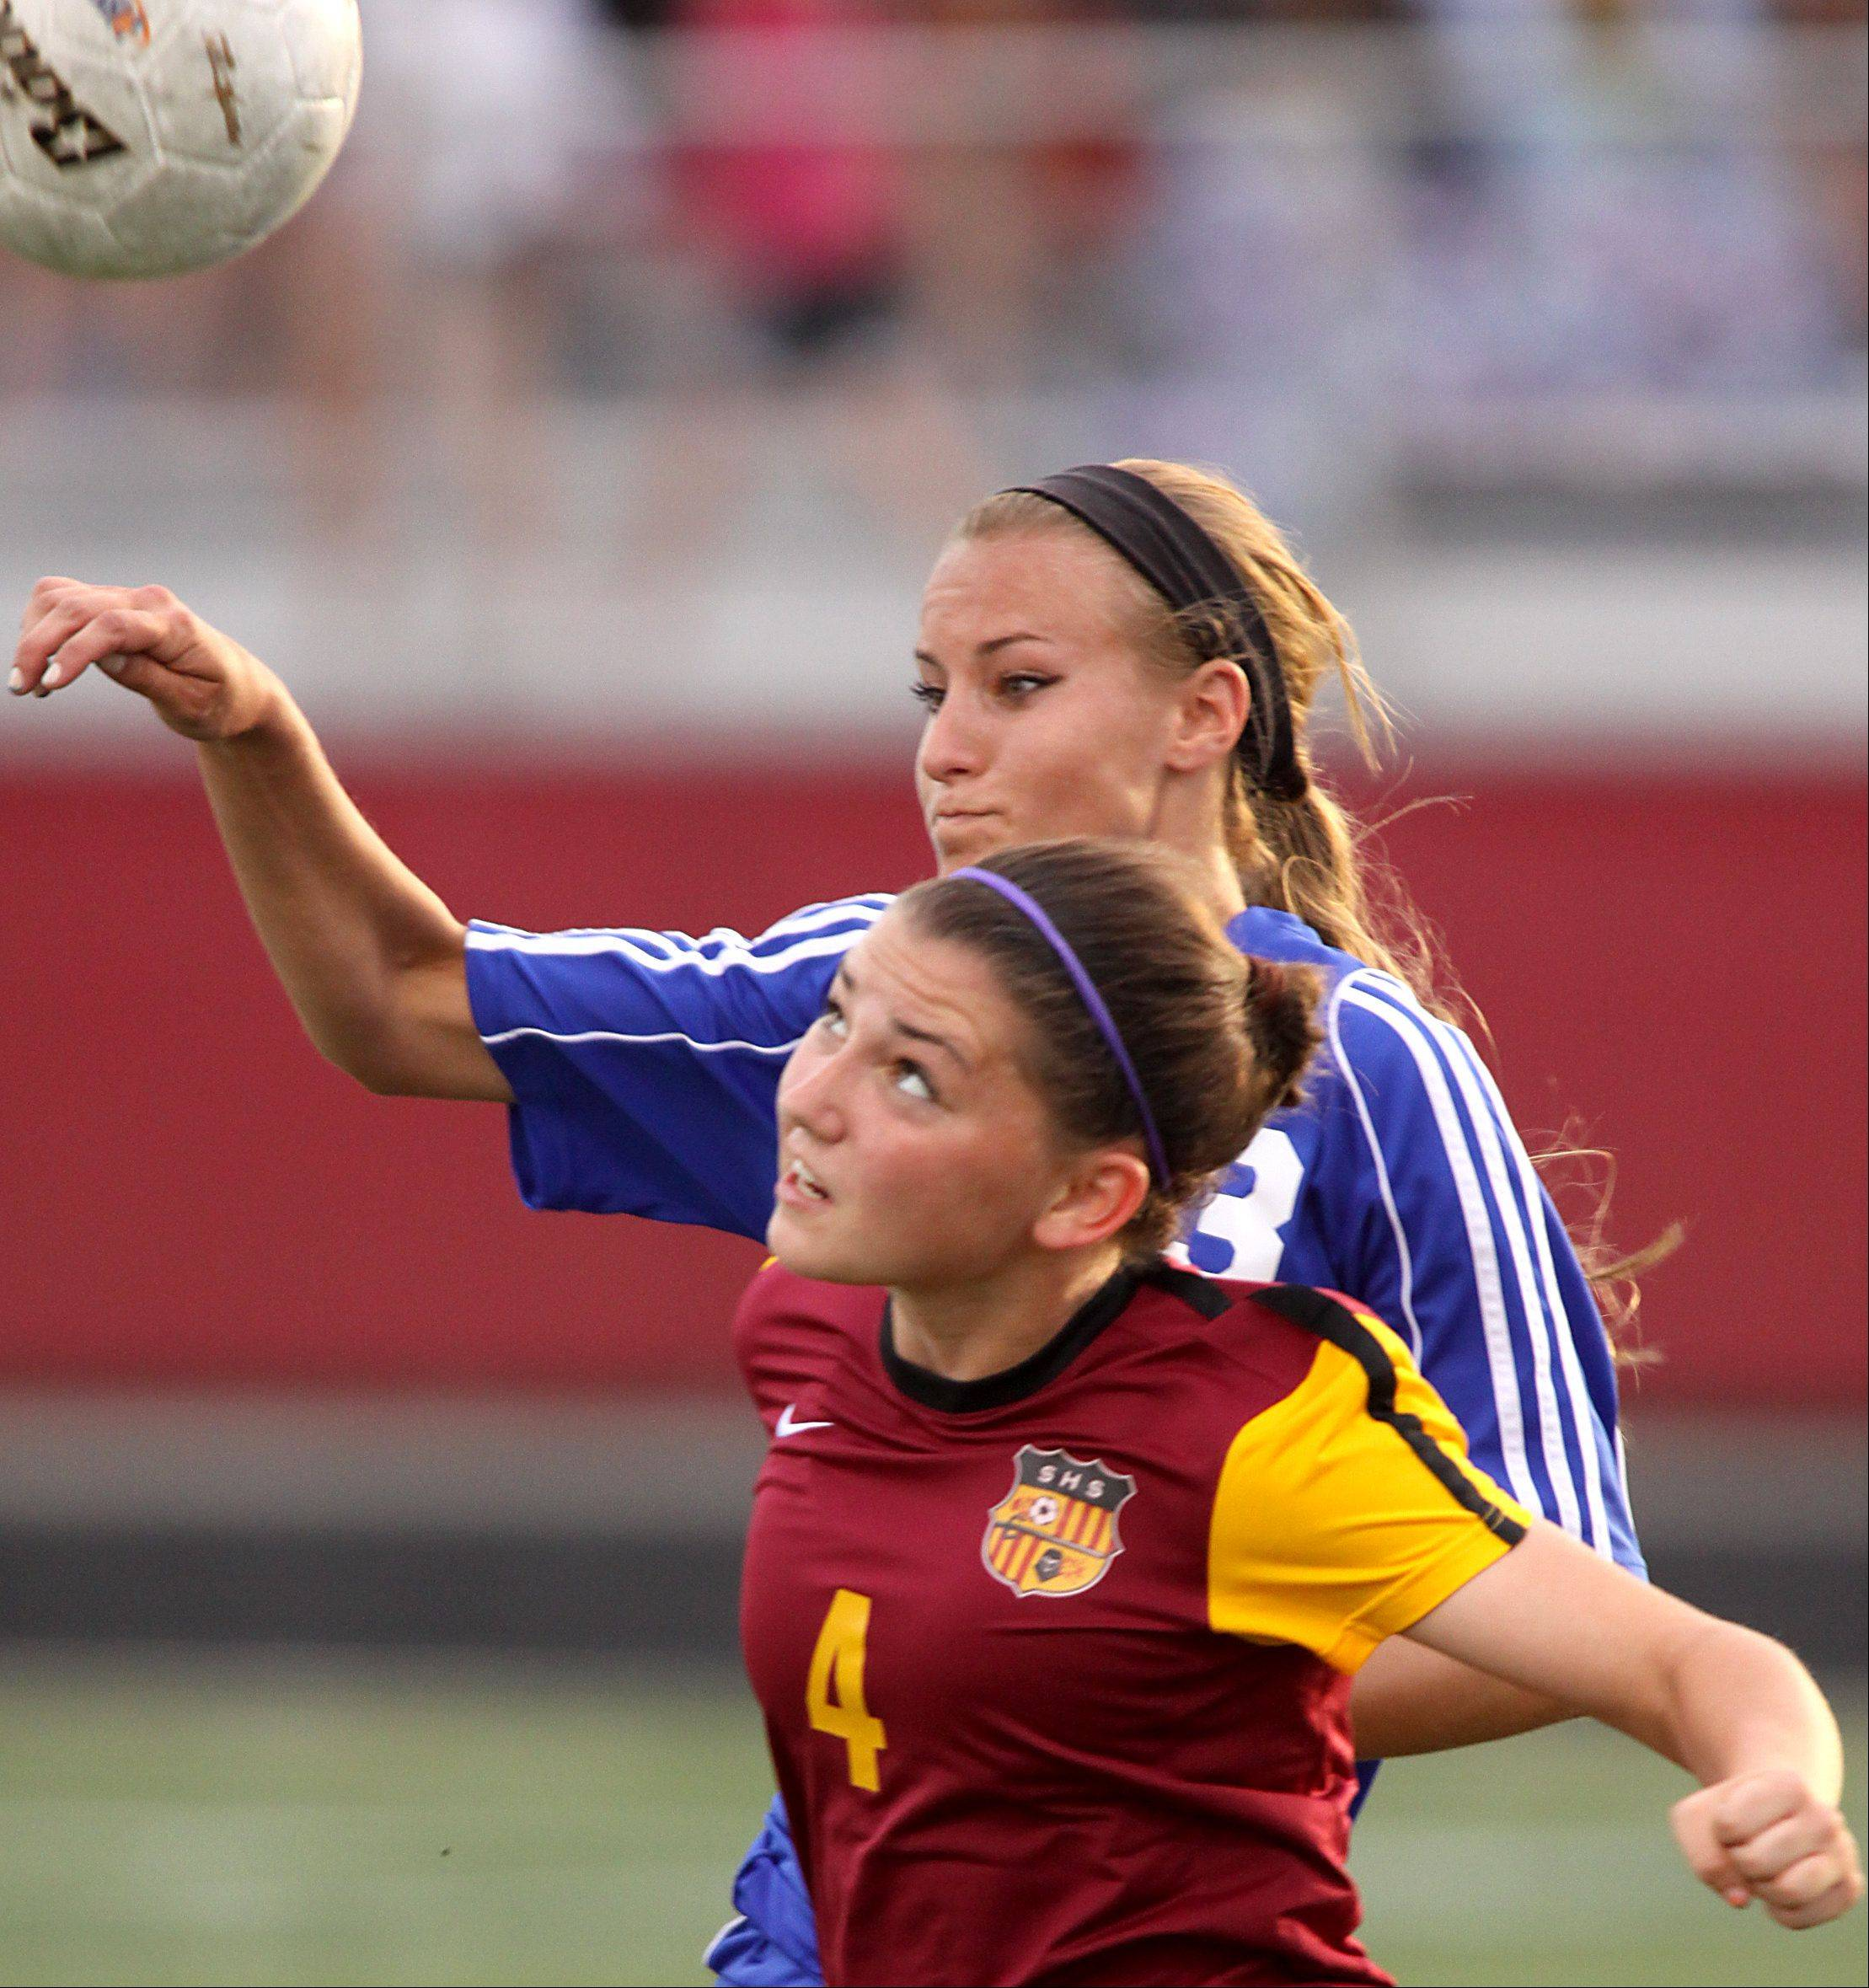 Schaumburg's Amanda Kelly, front, and St. Charles North's Lauren Koehl battle for control of the ball during Friday's sectional title soccer game in Schaumburg.